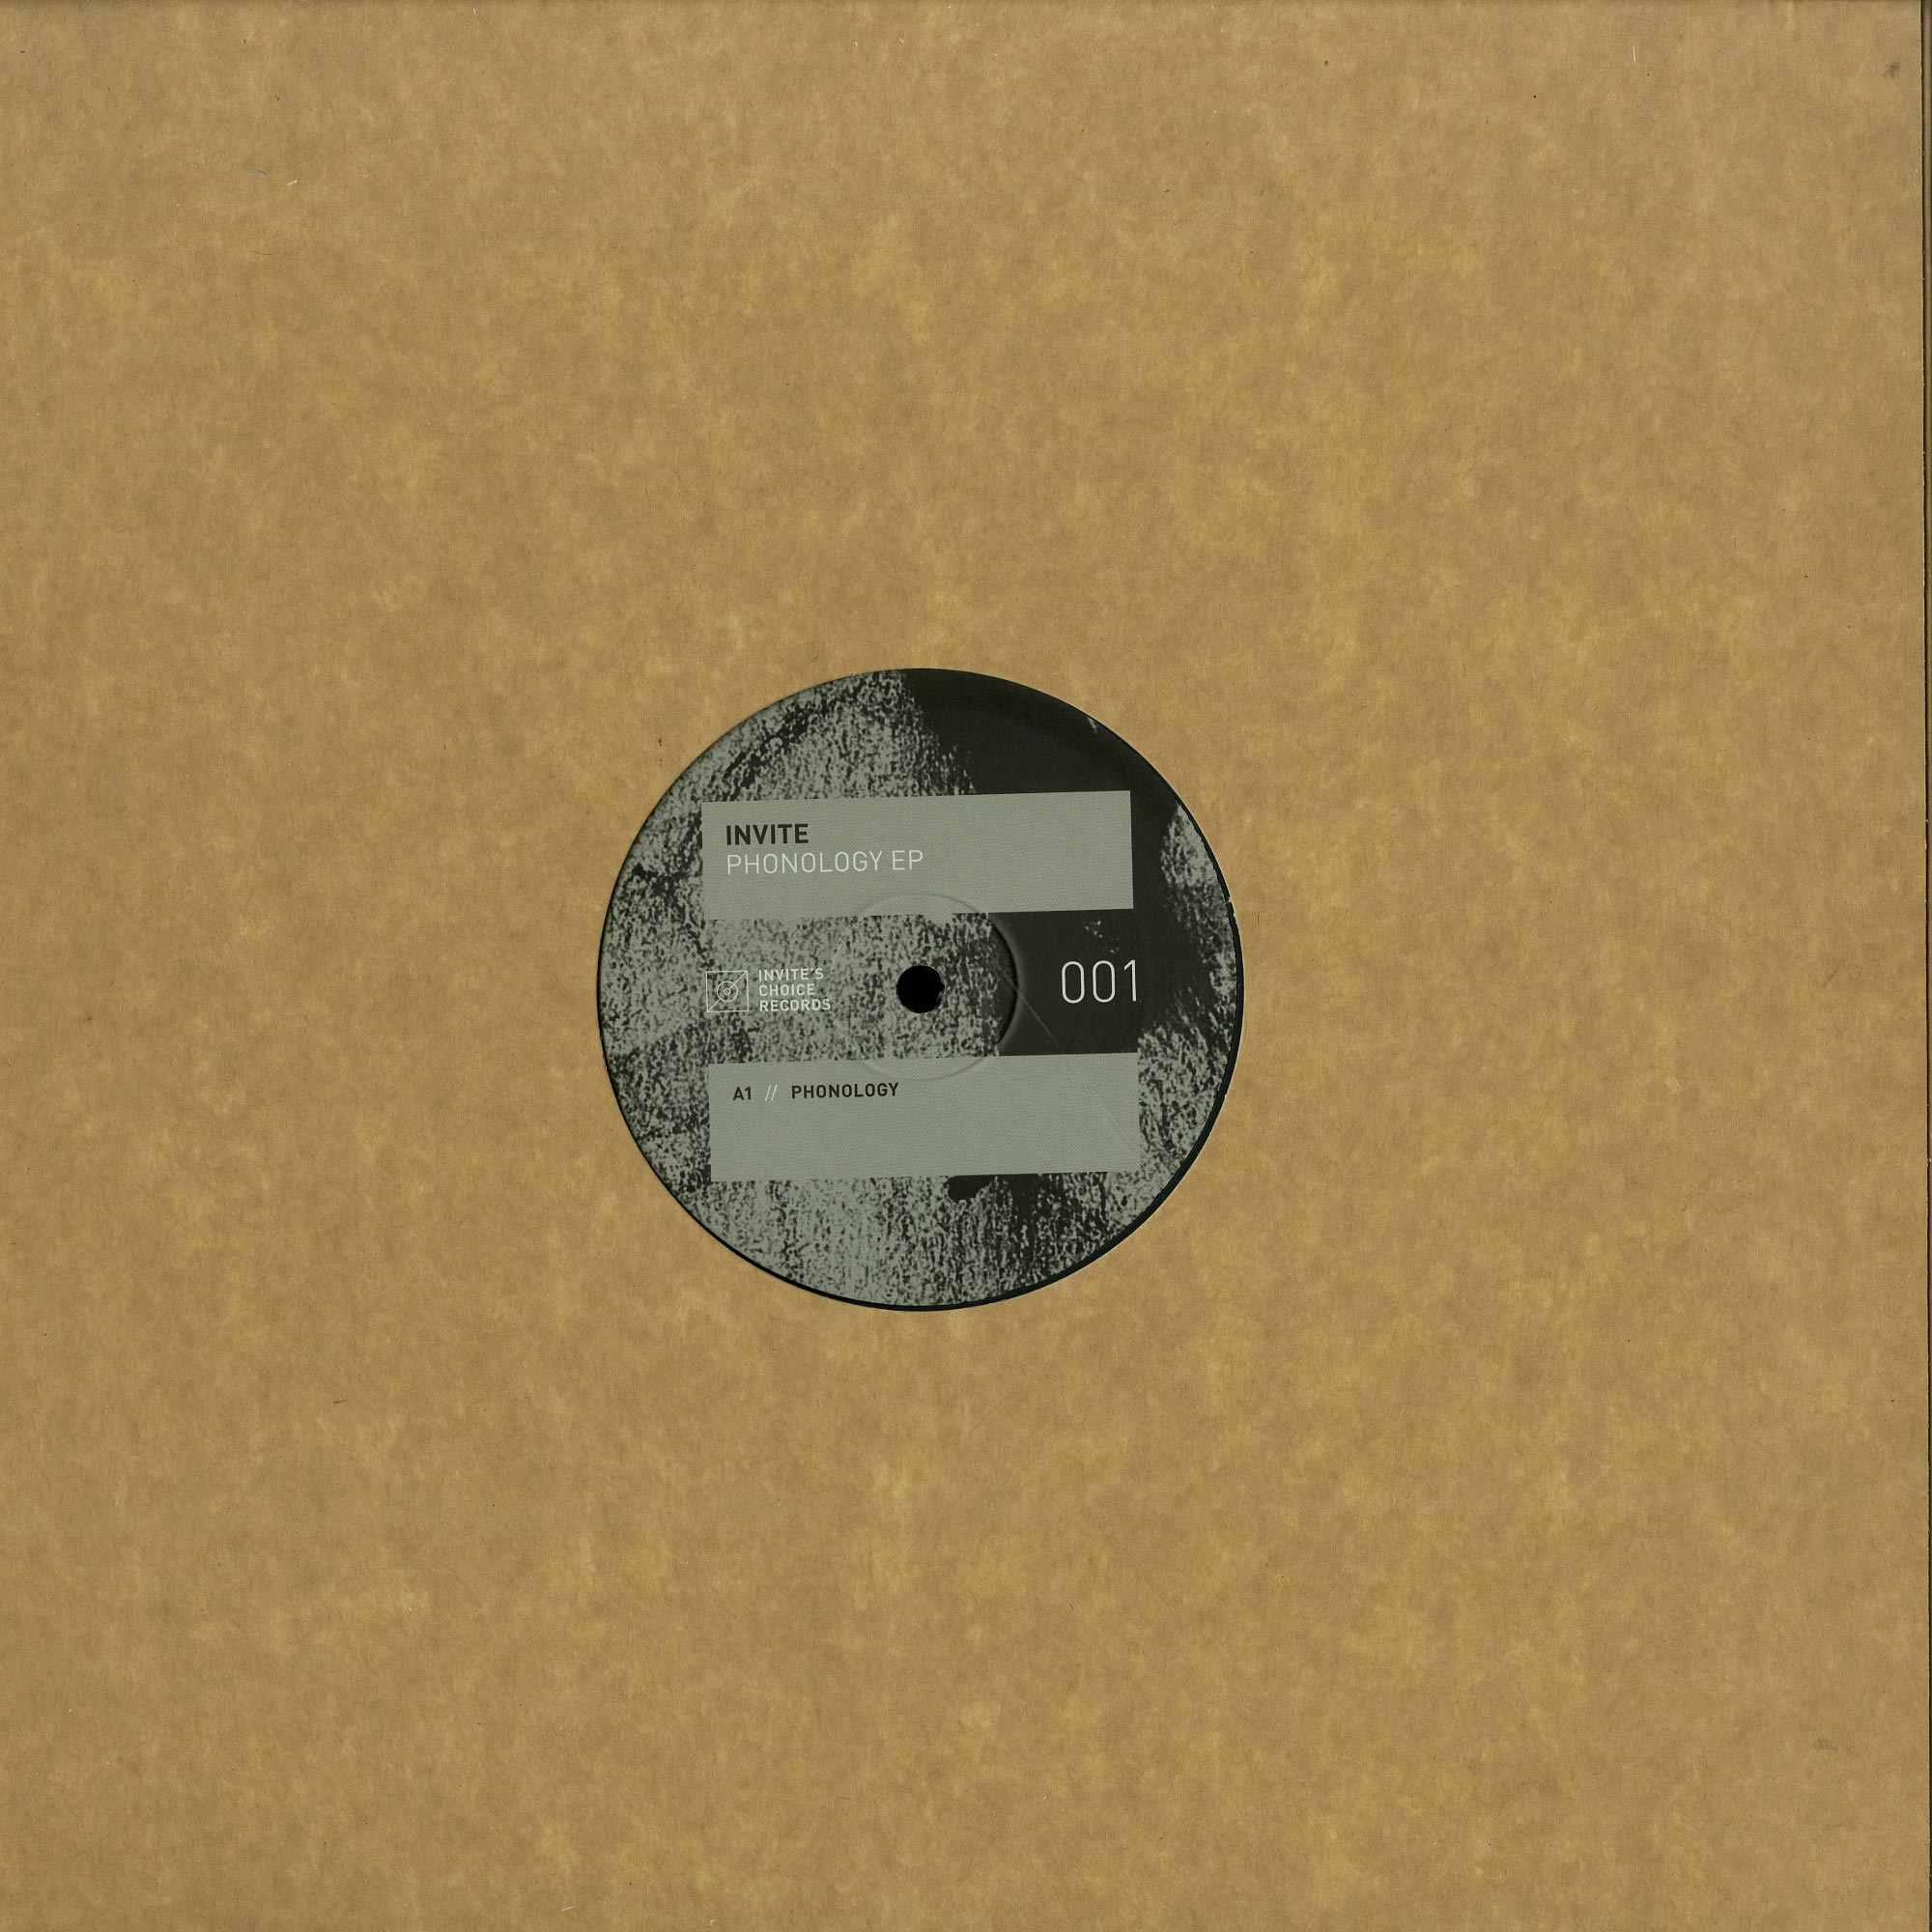 Invite - PHONOLOGY EP